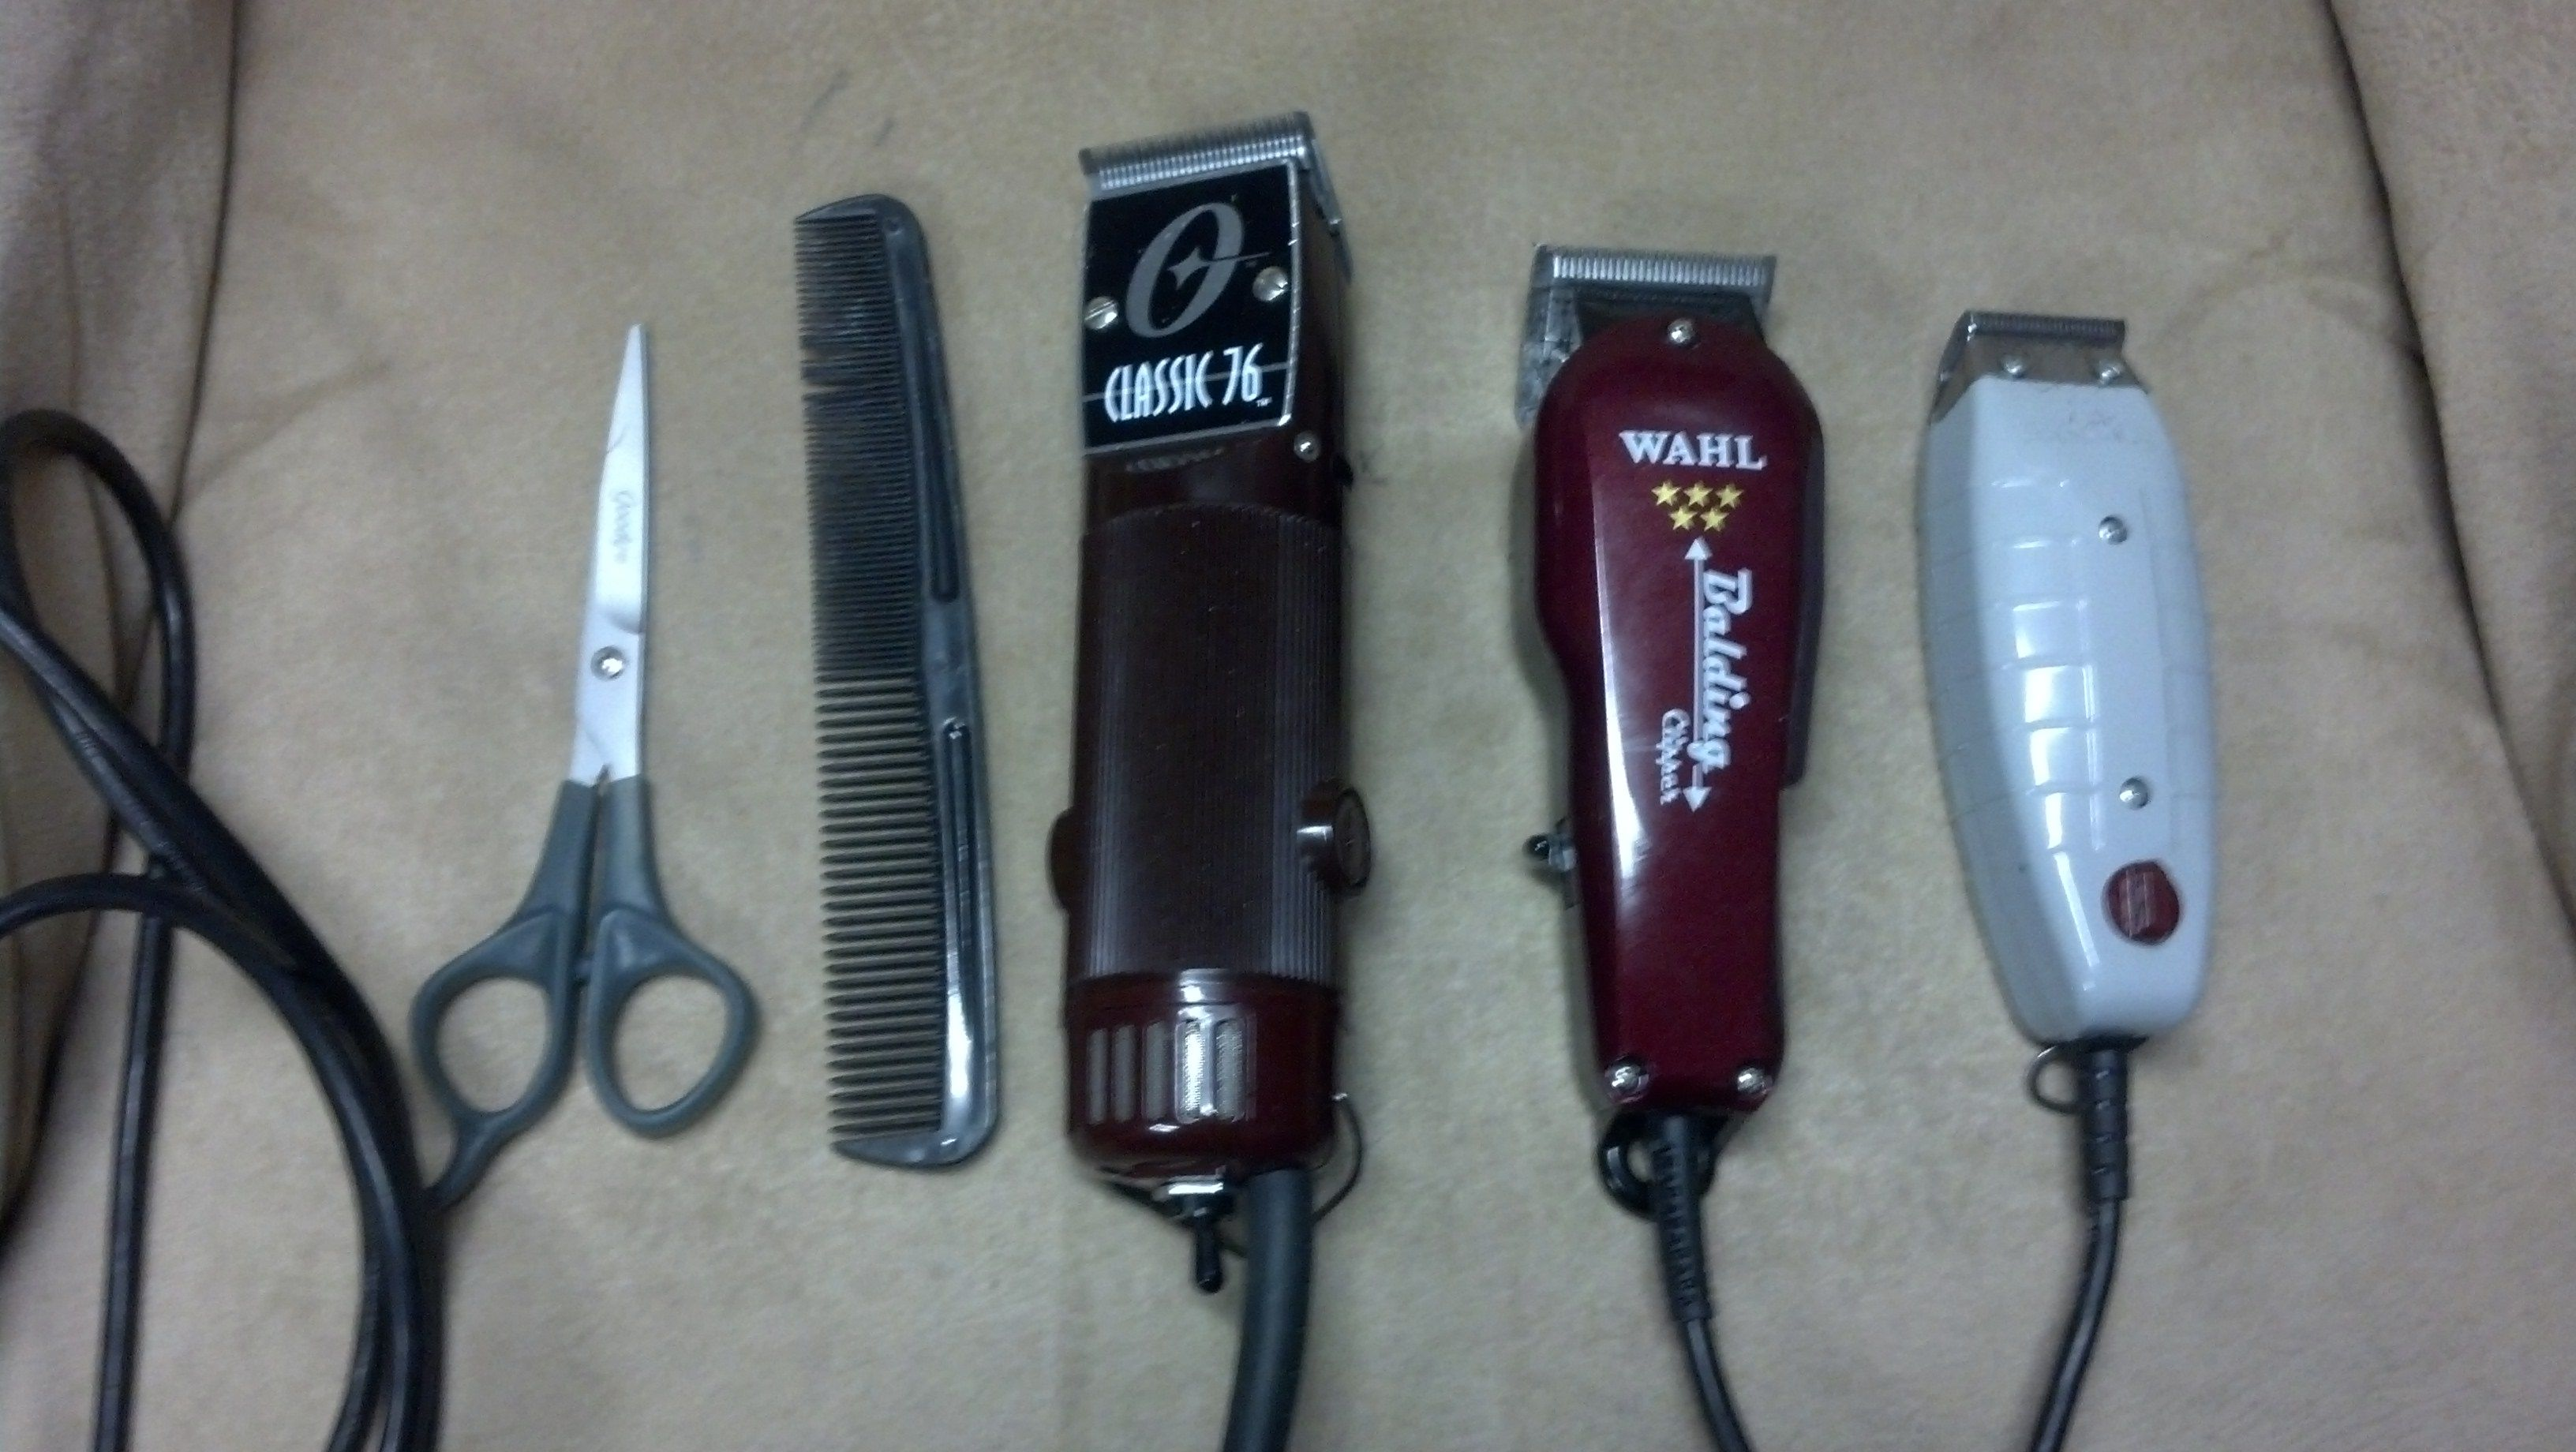 My beloved clippers. In the middle, the big, bad Oster 76s. To its right, the Wahl 5 Star Balding Clippers, and the to the far right the Andis Outliners. Need a haircut?  Yeah, yeah, I need a new comb and better scissors, but I needed something to balance them out.